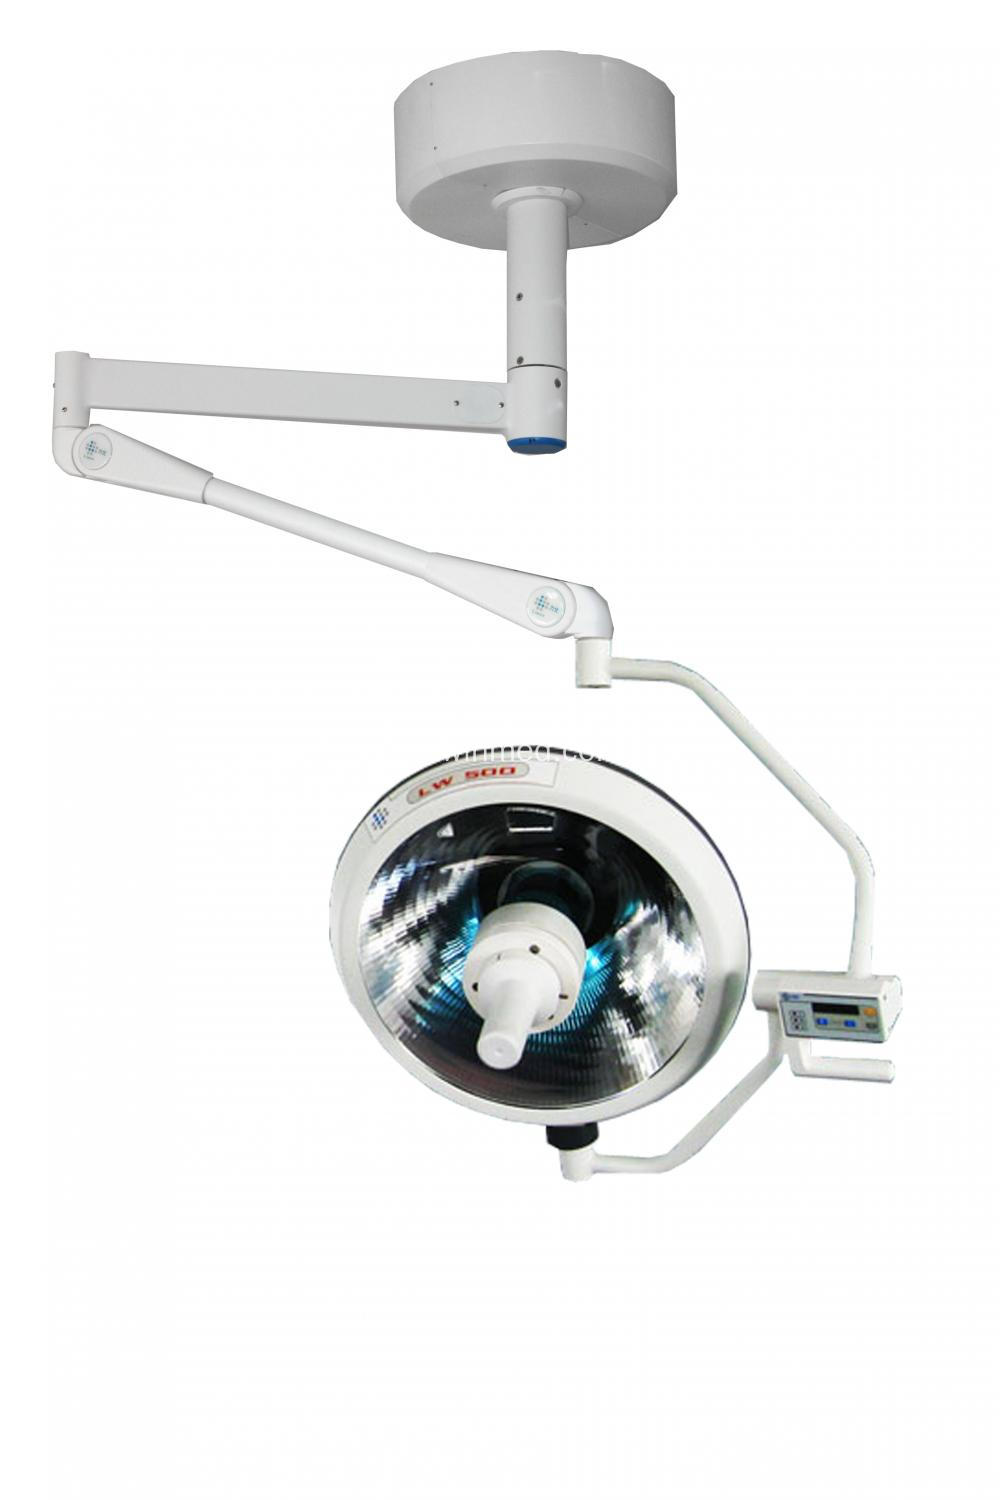 Medical+ceiling+halogen+operating+lamp+with+CE